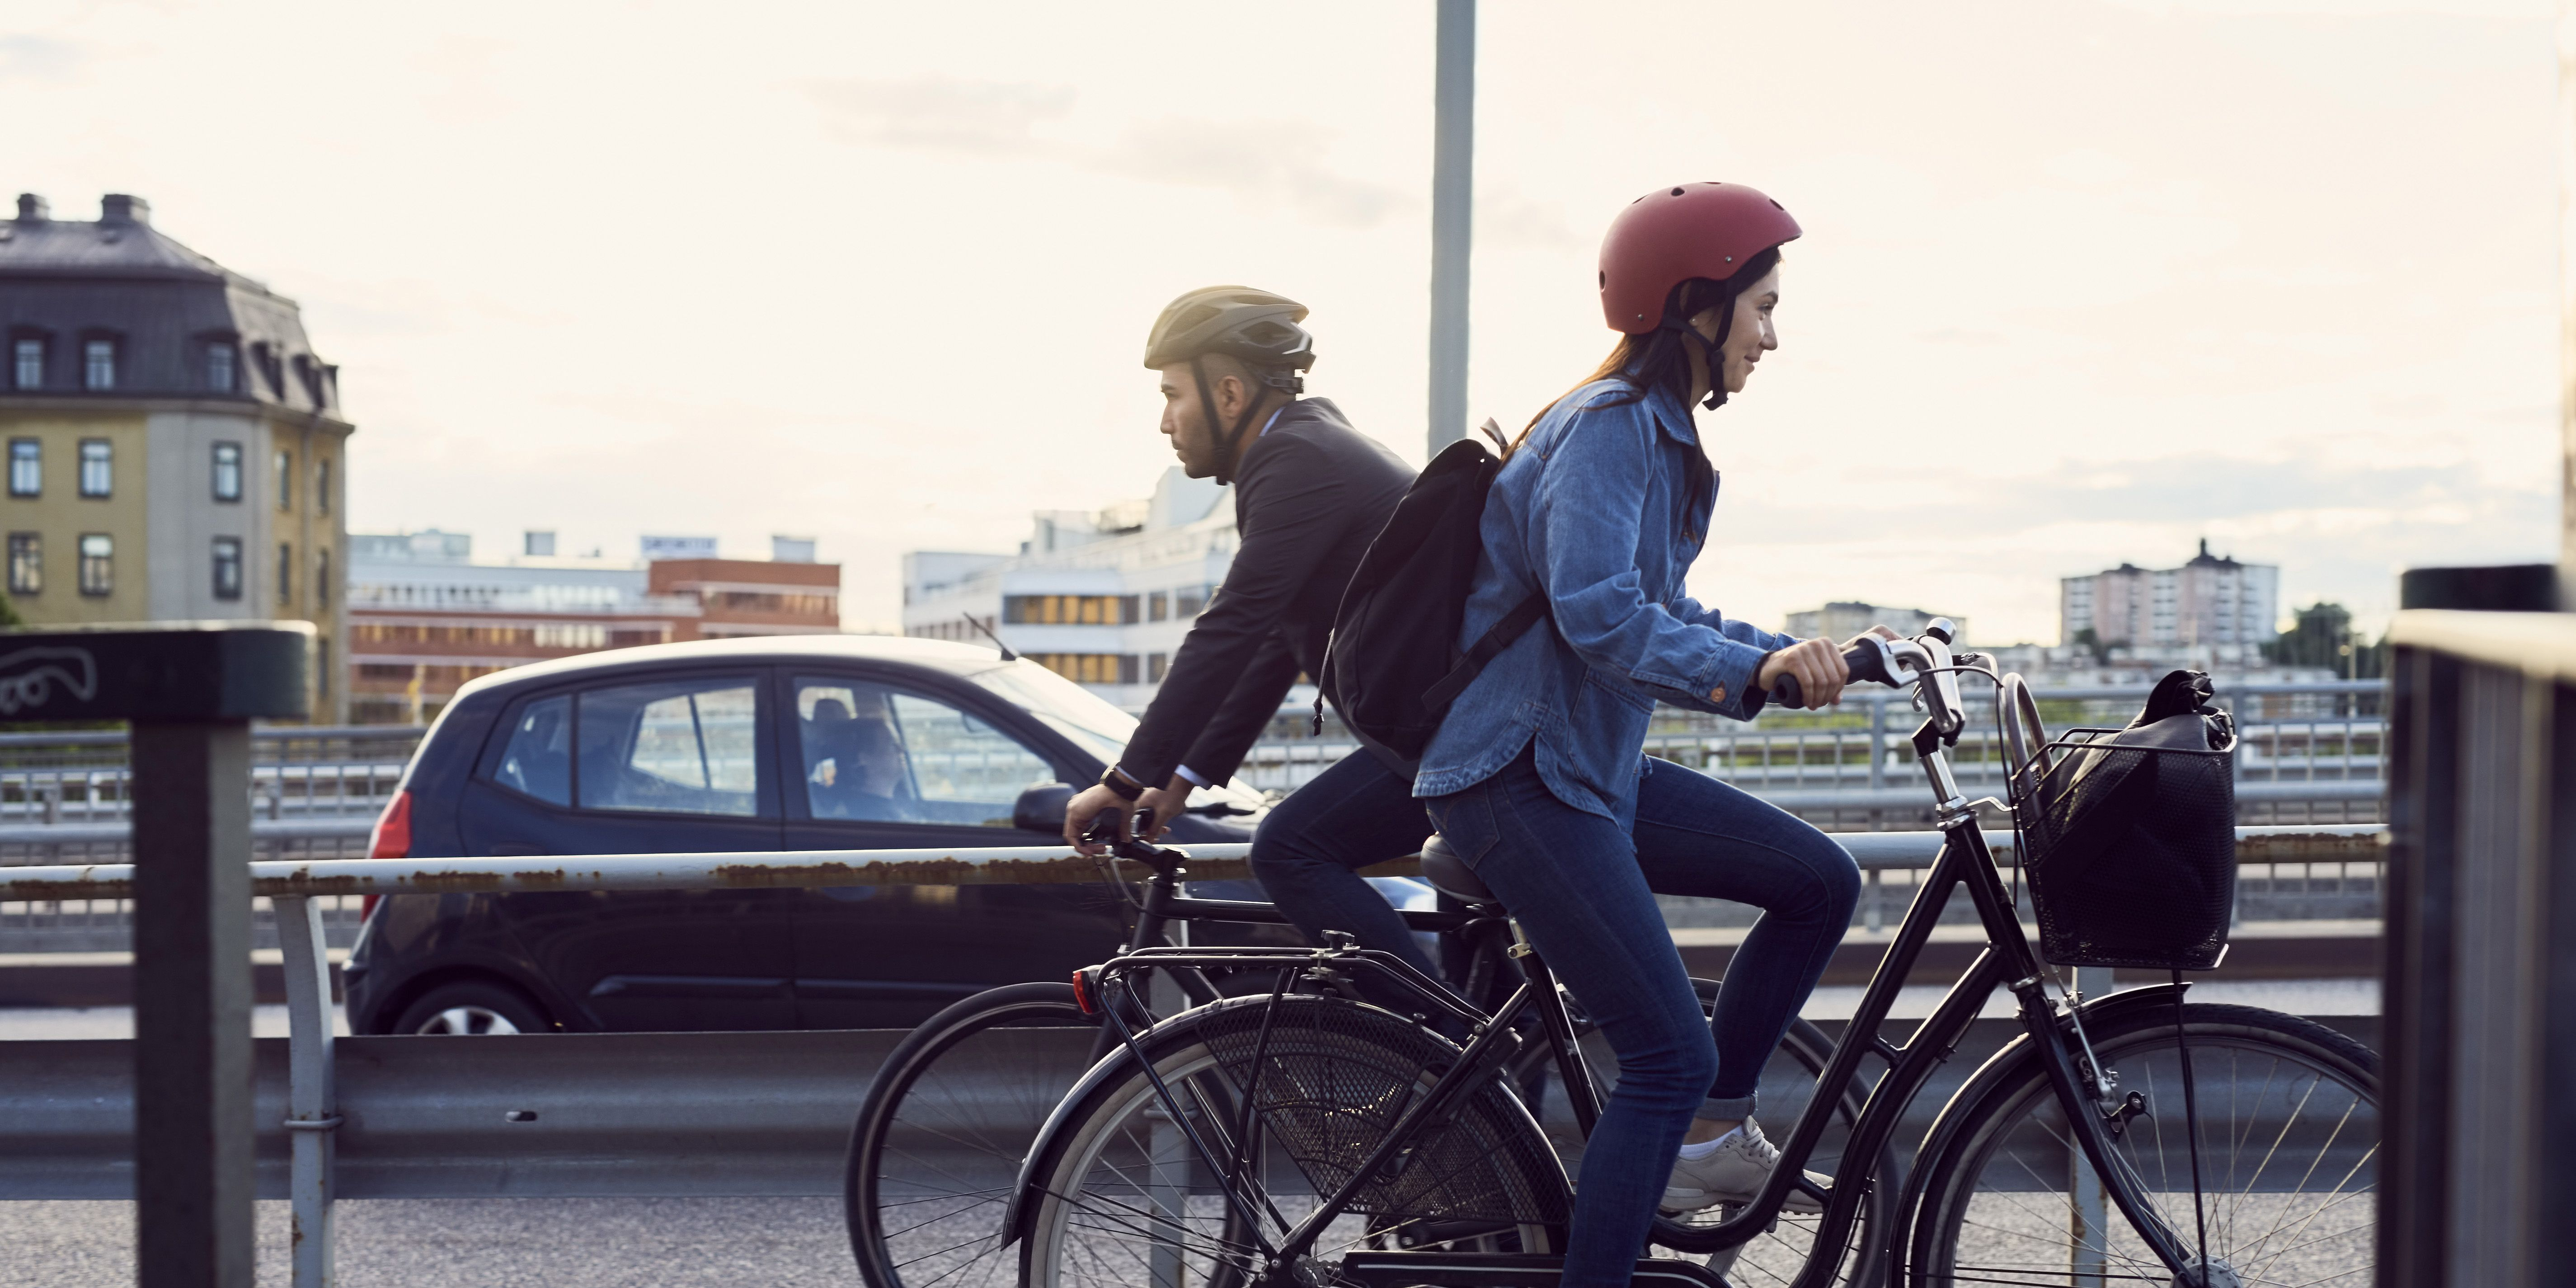 Side view of people cycling on street against sky